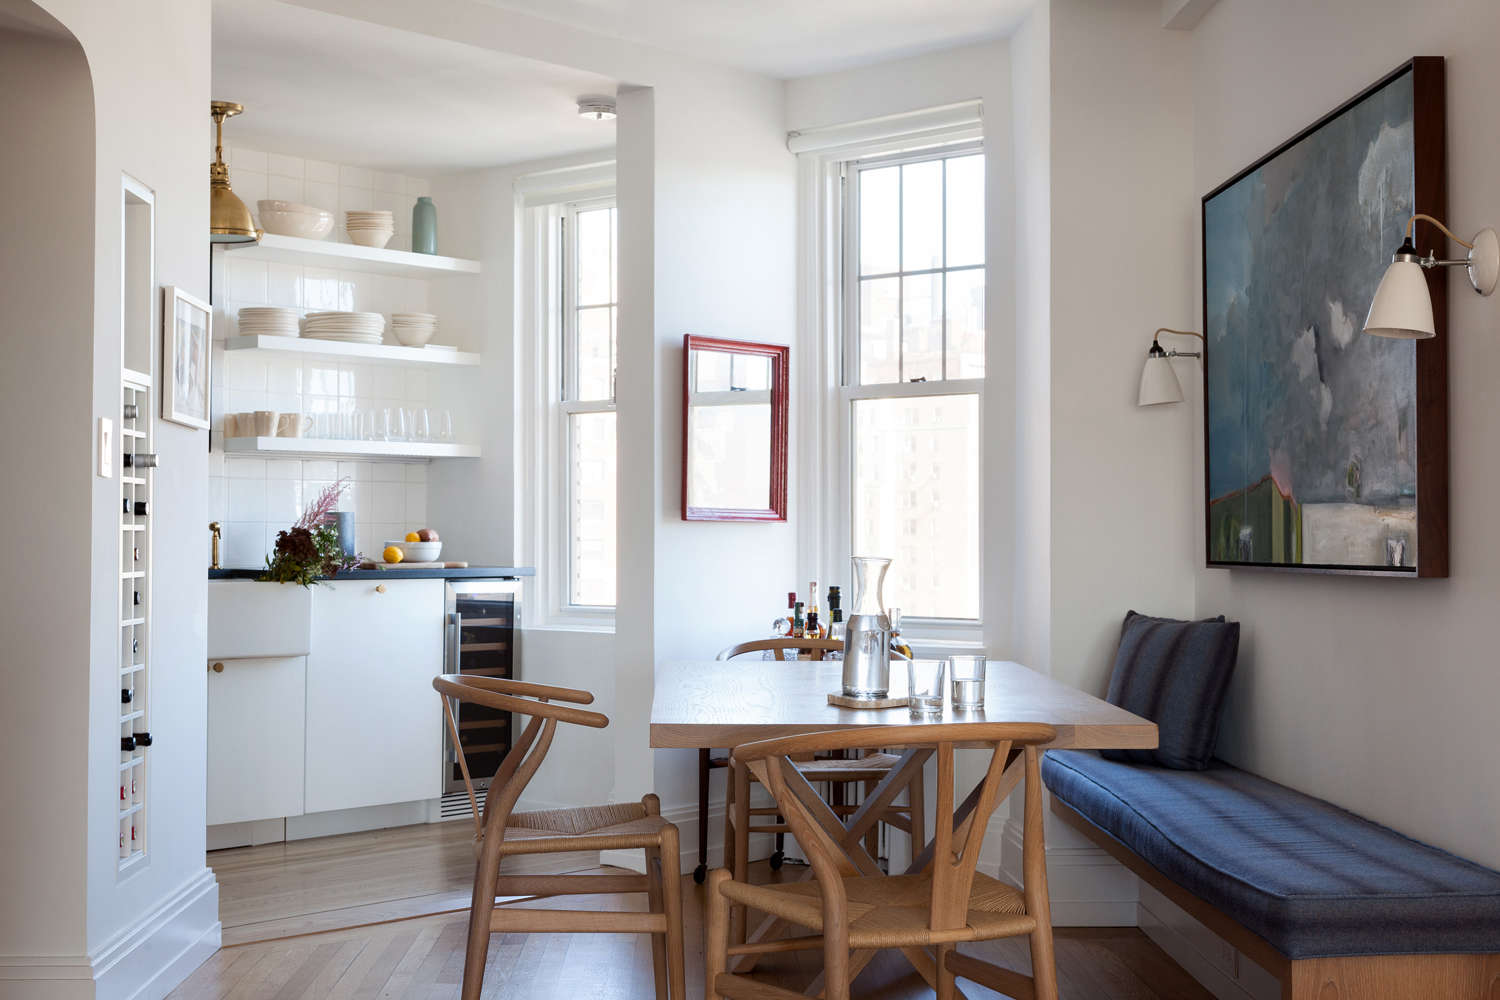 Seth Meyers and Alexi Ashe's compact New York kitchen remodeled by Ashe + Leandro, photo by Fran Parente | Remodelista